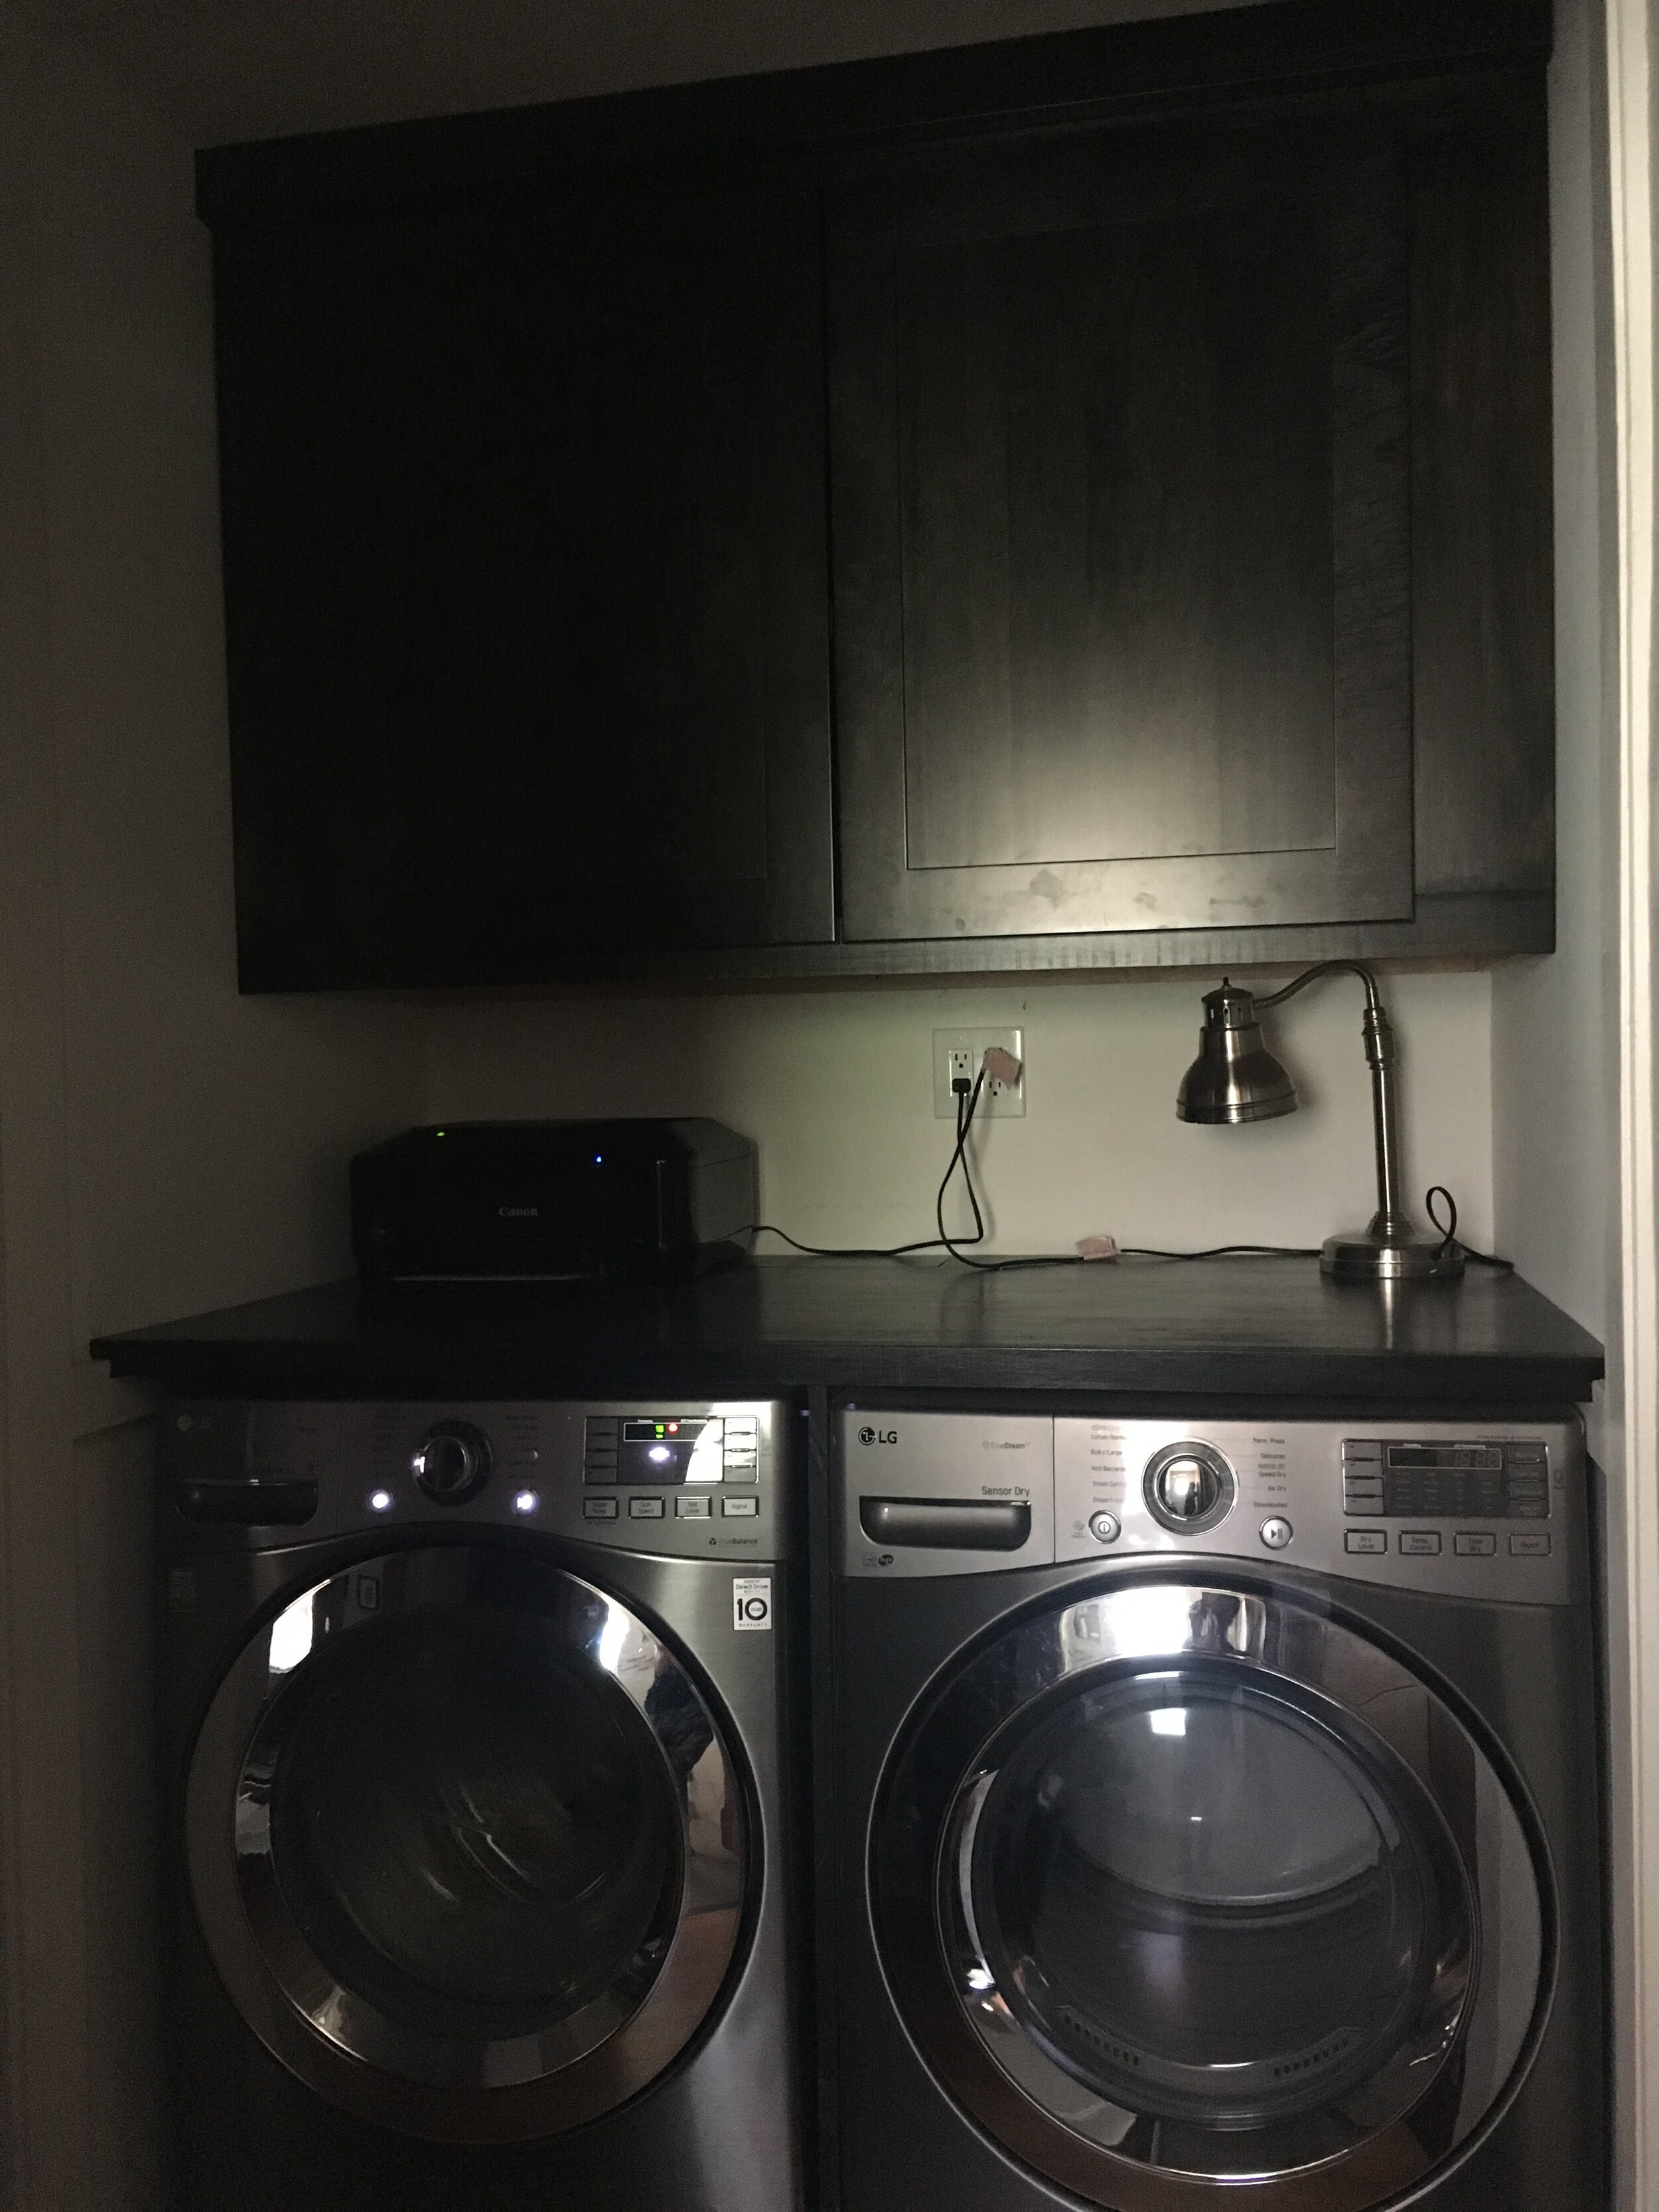 Across the bathroom, another dead space paved way for a washer/dryer and more cabinet space!